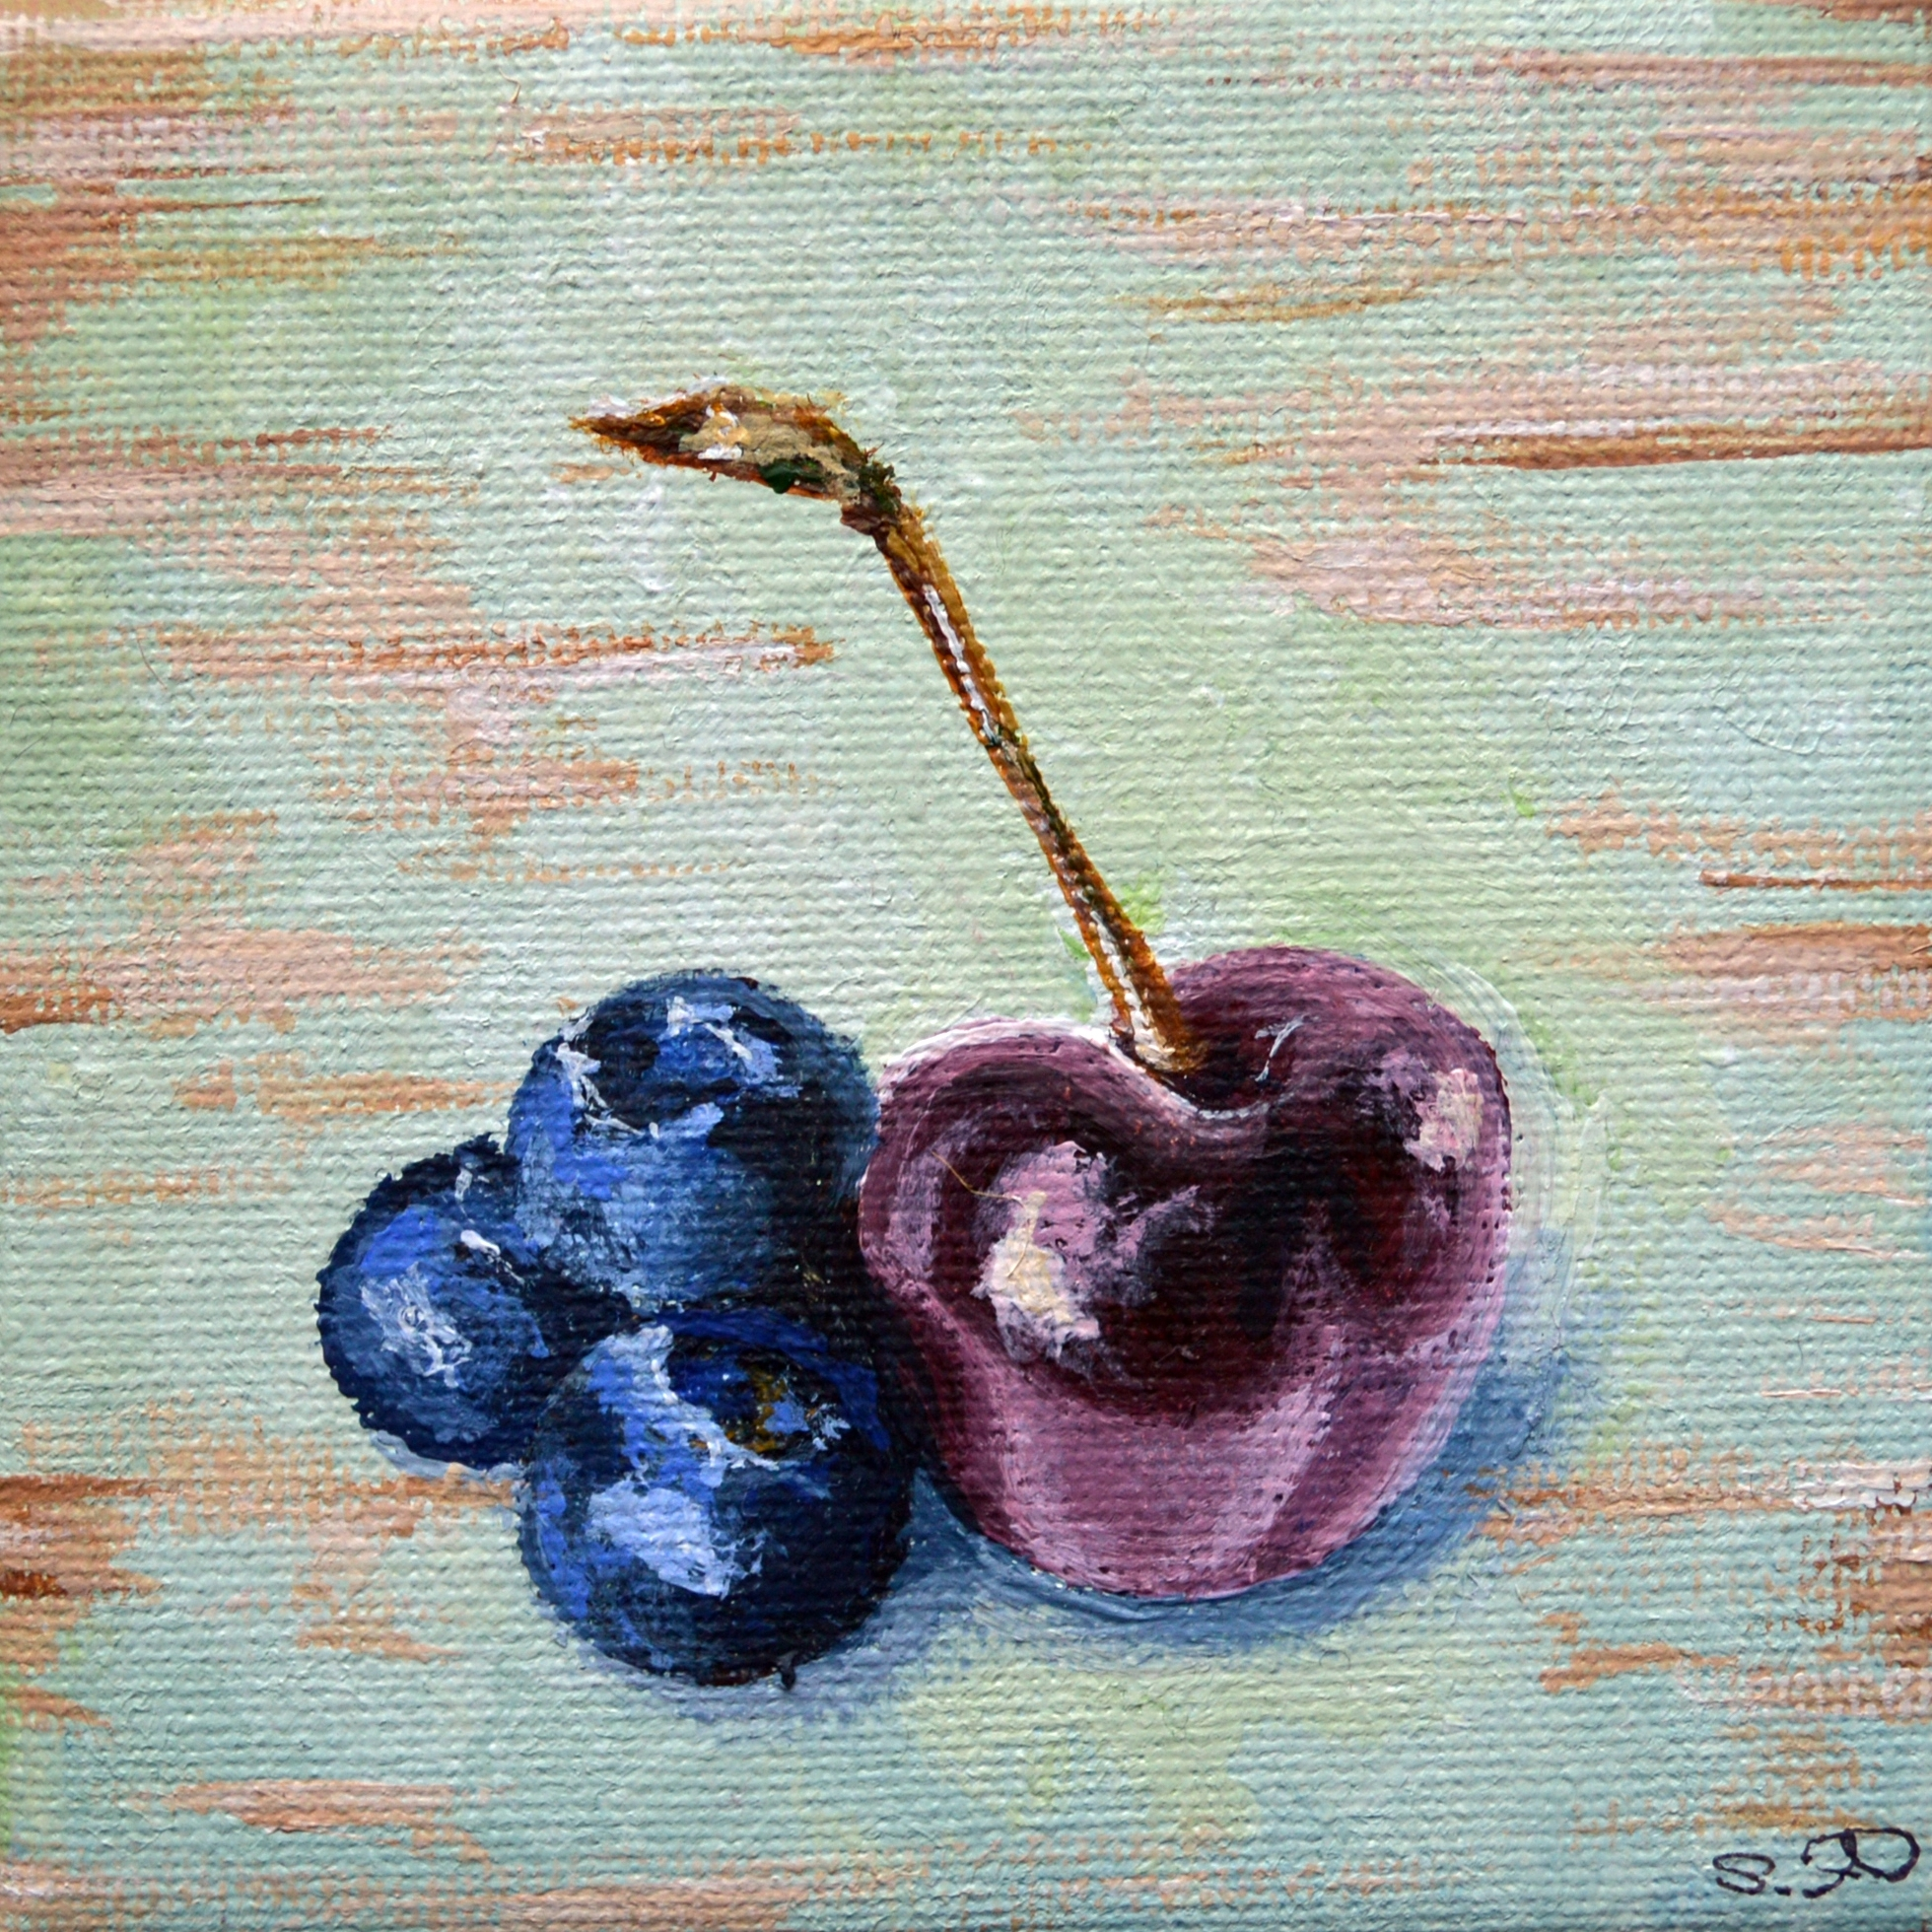 Summer Fruits: Blueberries and Cherry